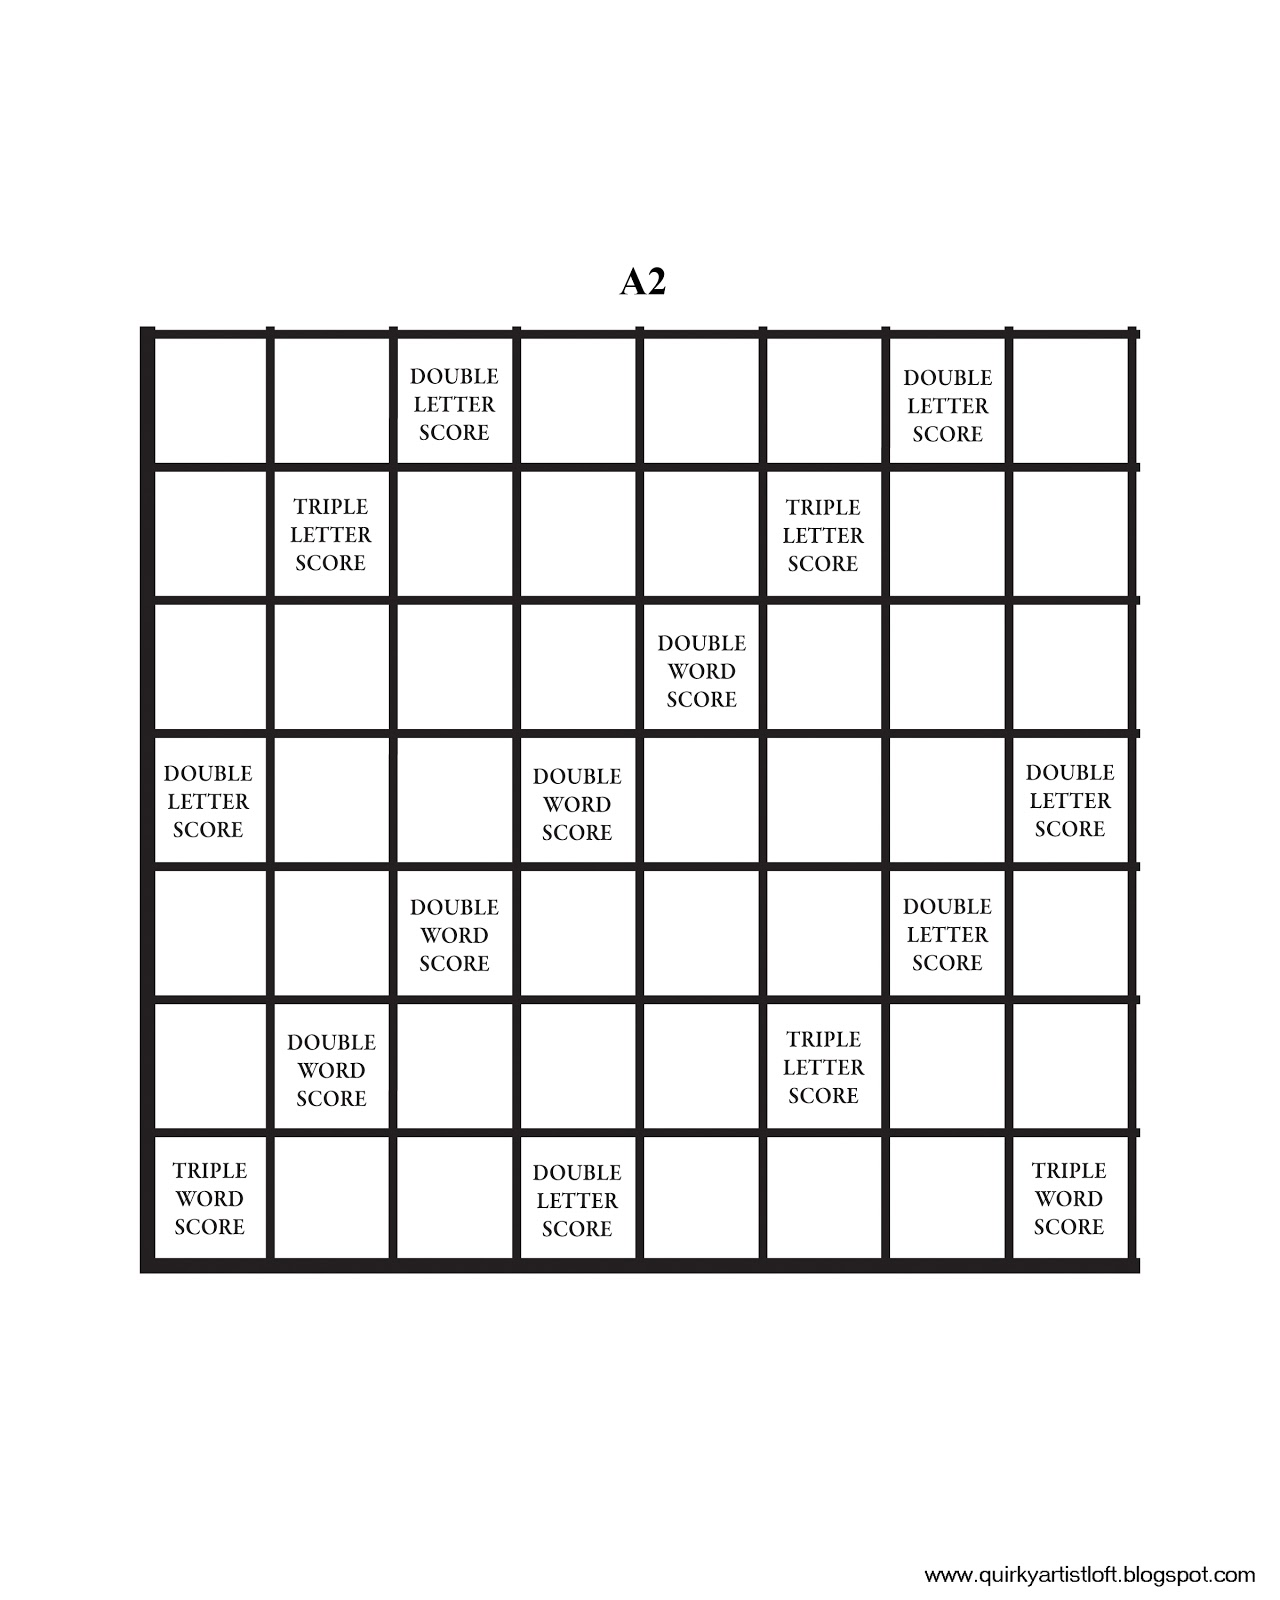 graphic relating to Printable Scrabble Board known as Quirky Artist Loft Do-it-yourself Printable Scrabble Board no cost impression